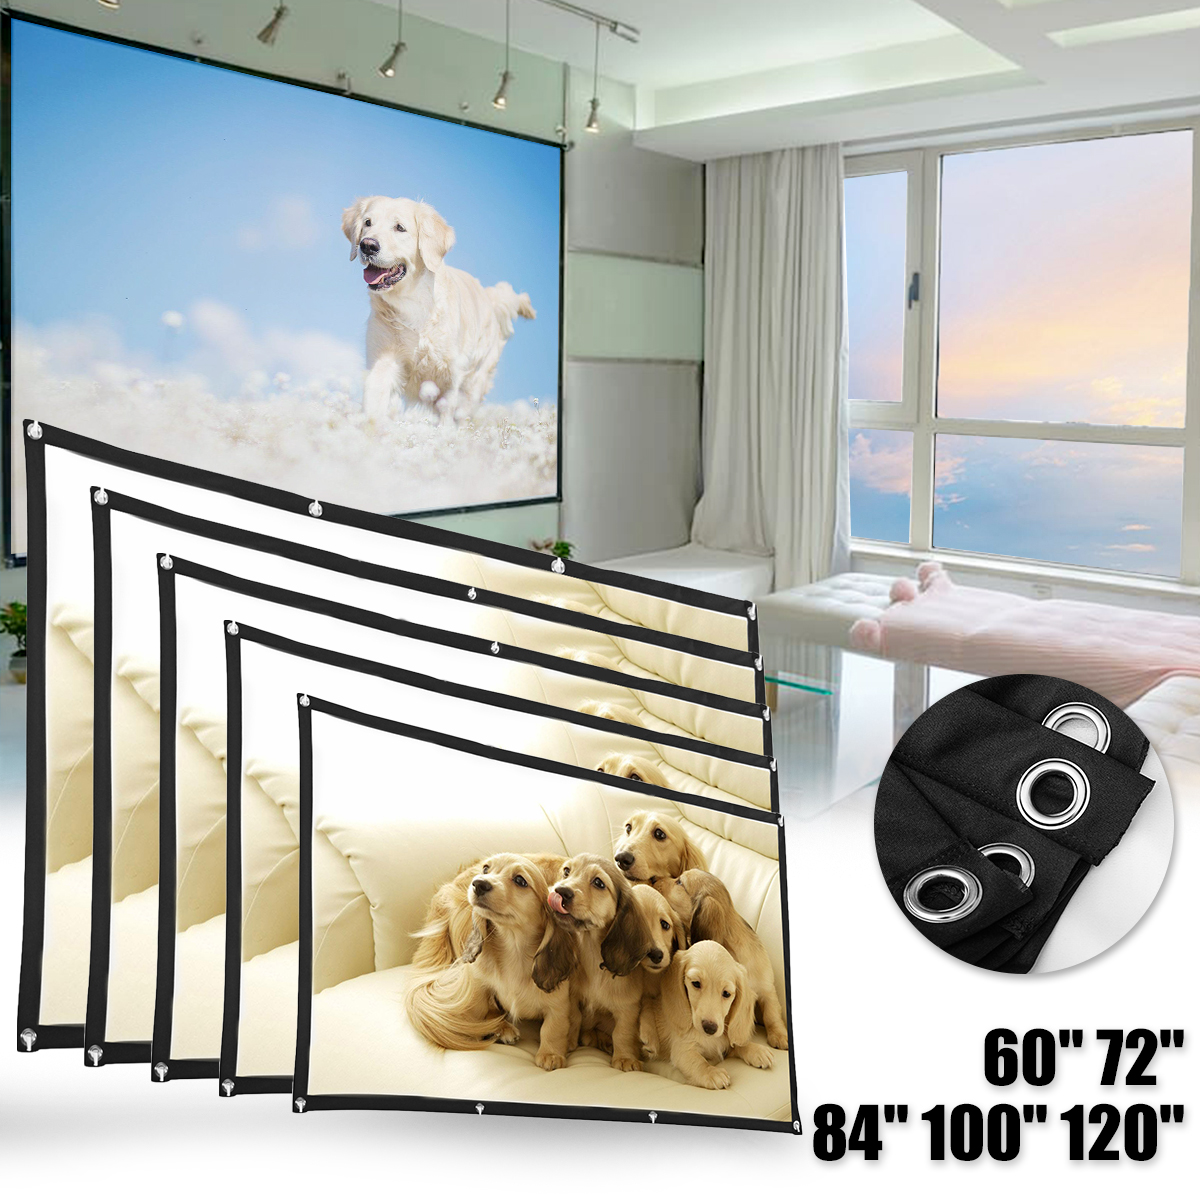 60 72 84 100 <font><b>120</b></font> Inch <font><b>16:9</b></font> Portable Projector <font><b>Screen</b></font> Projection HD Home Cinema Theater Foldable <font><b>Screen</b></font> Canvas for Projector image